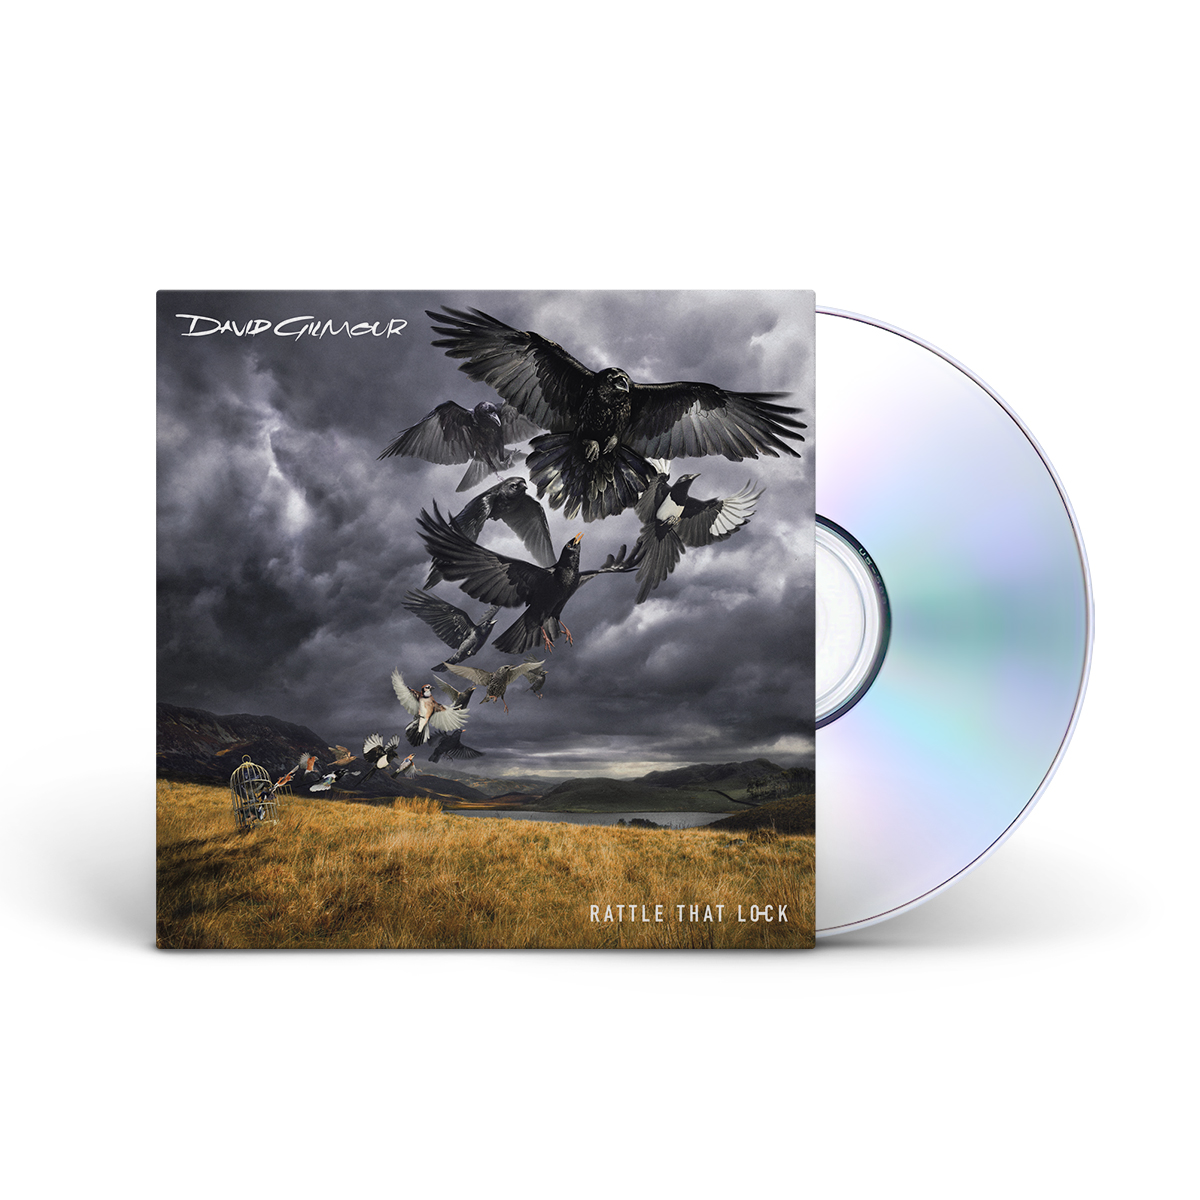 David Gilmour Rattle That Lock CD